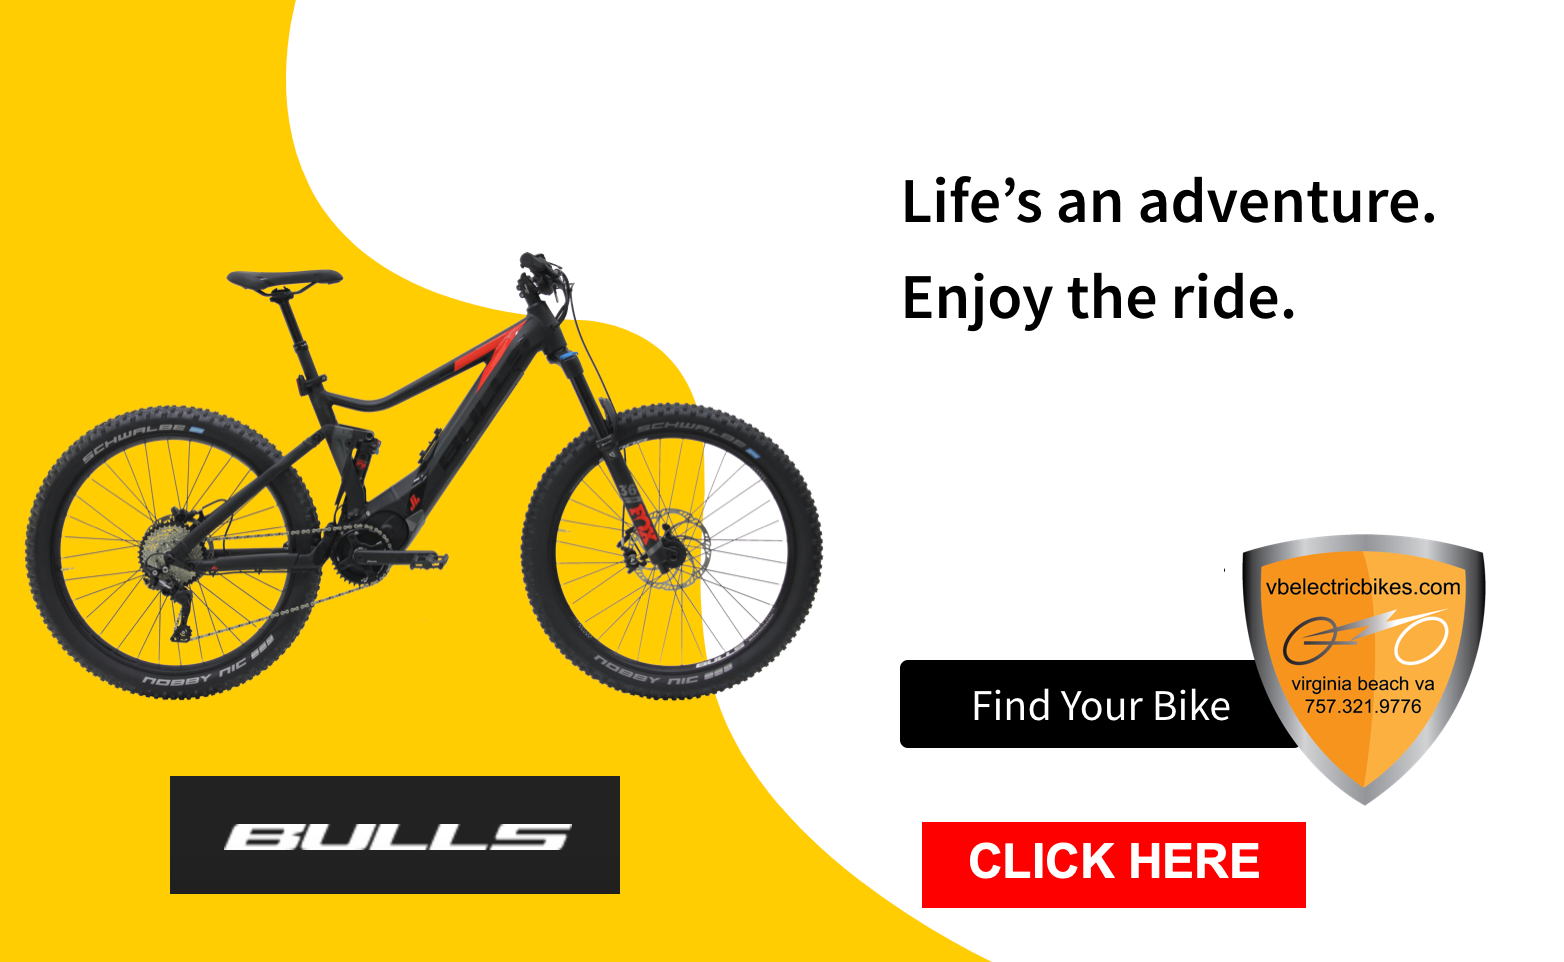 Find Your BULLS E-BIKLE Click HERE